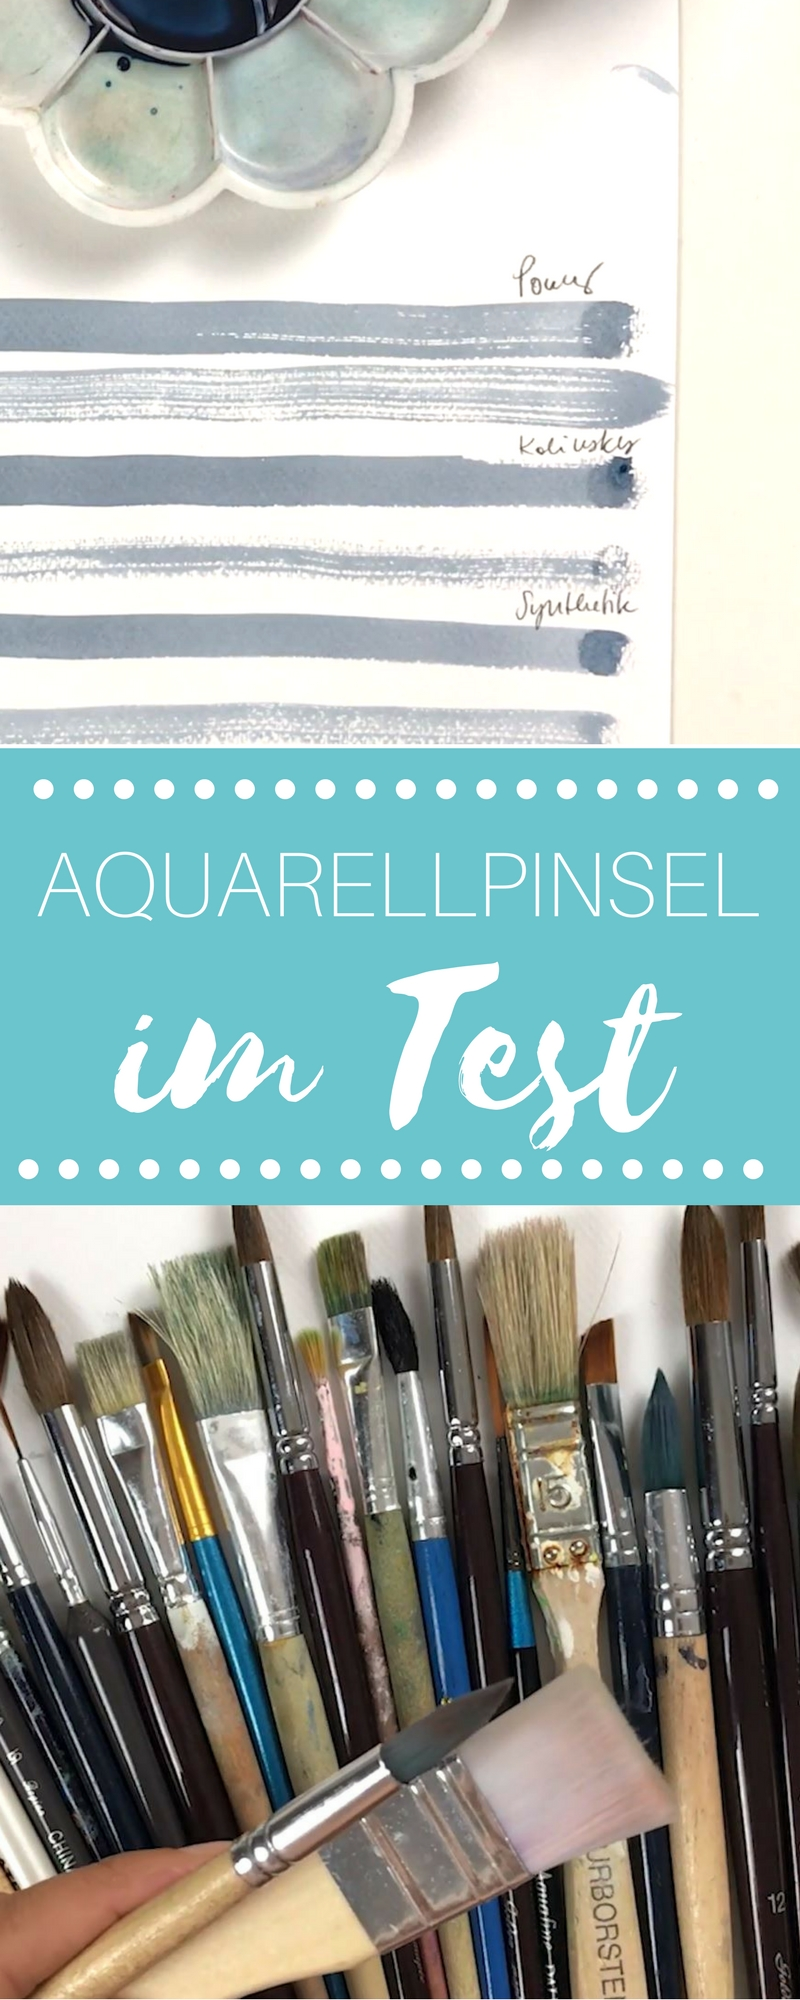 Aquarellpinsel im Test